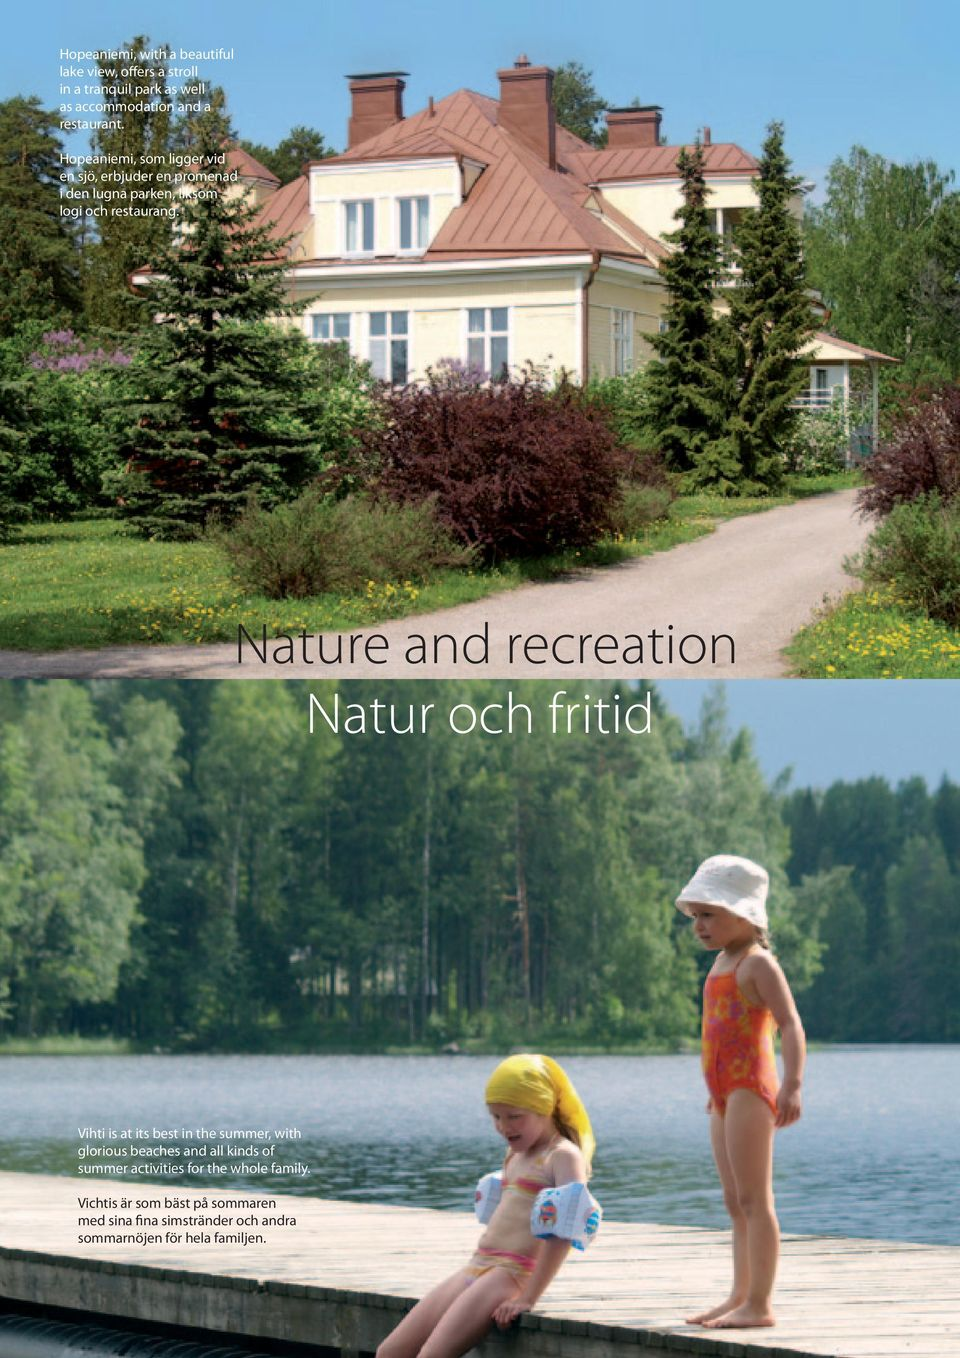 Nature and recreation Natur och fritid Vihti is at its best in the summer, with glorious beaches and all kinds of